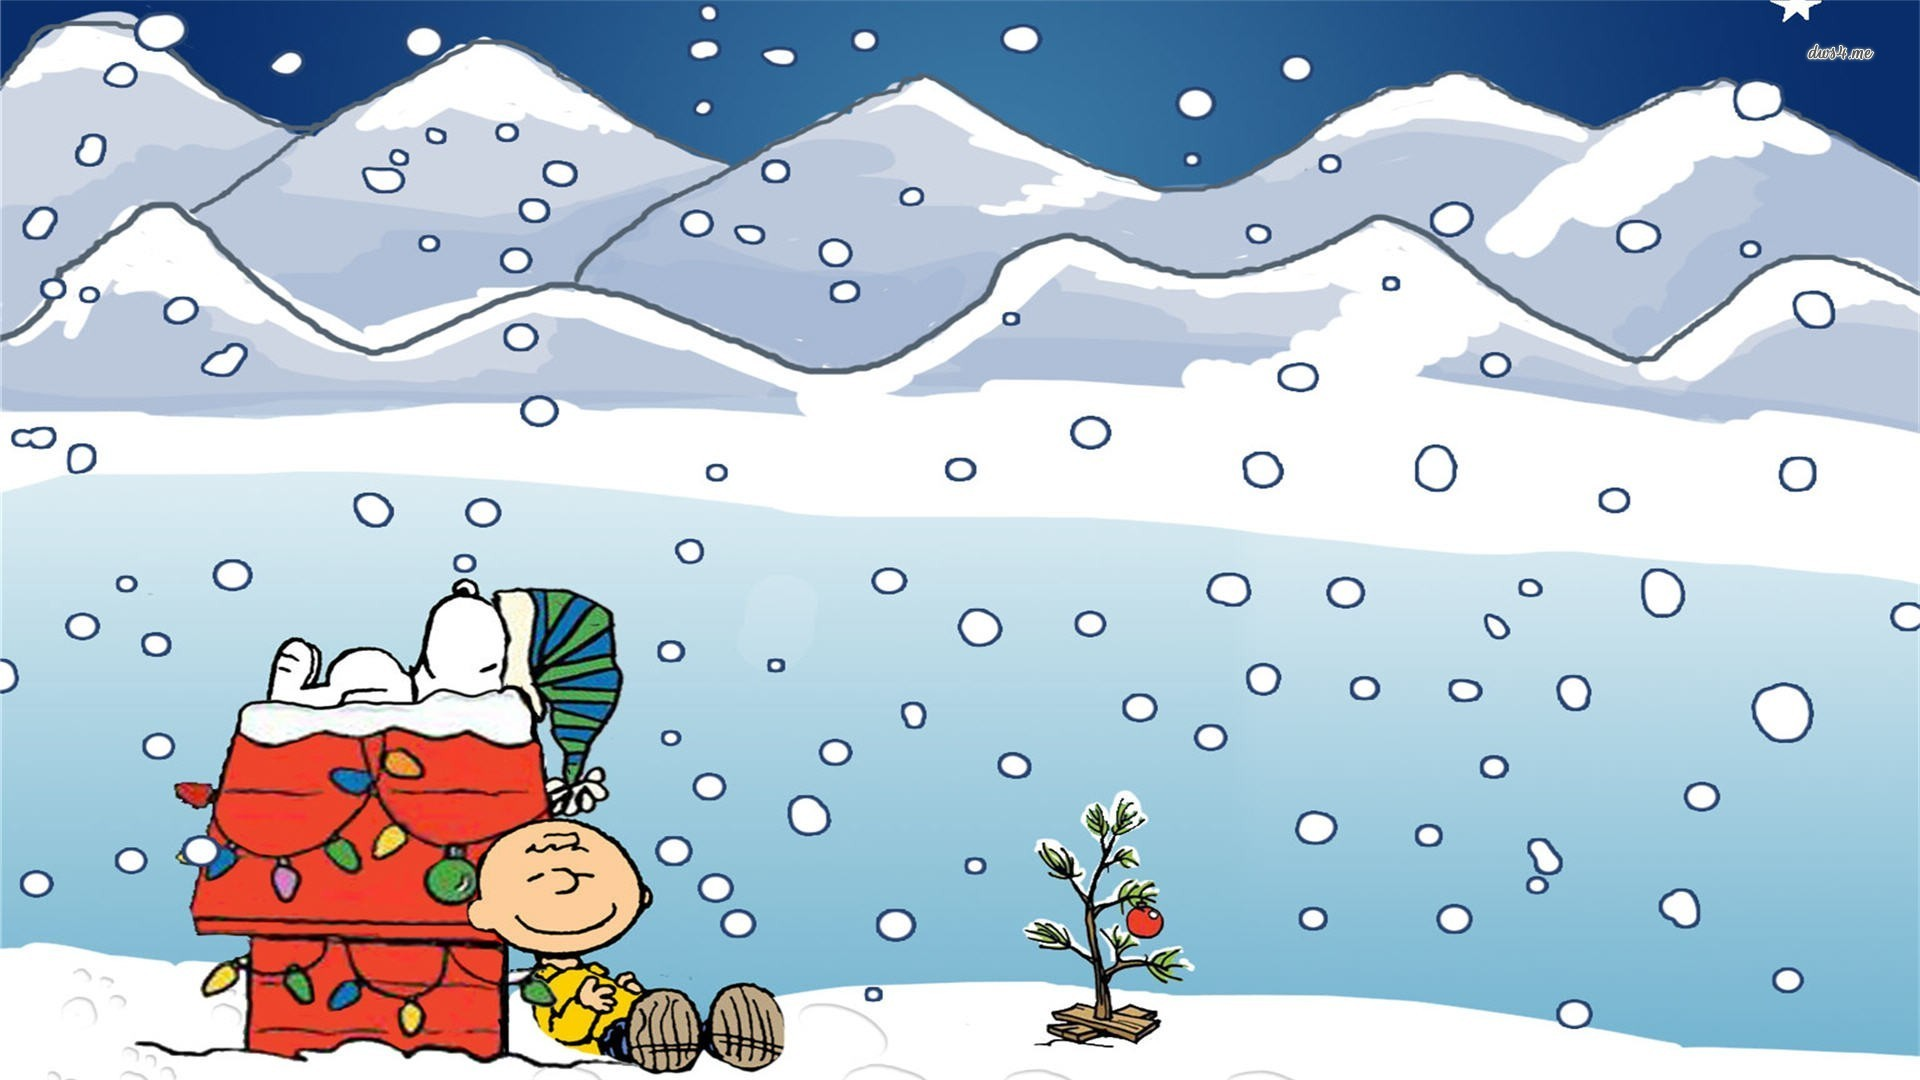 Charlie Brown and Snoopy Download Cartoon Wallpaper For 1920x1080